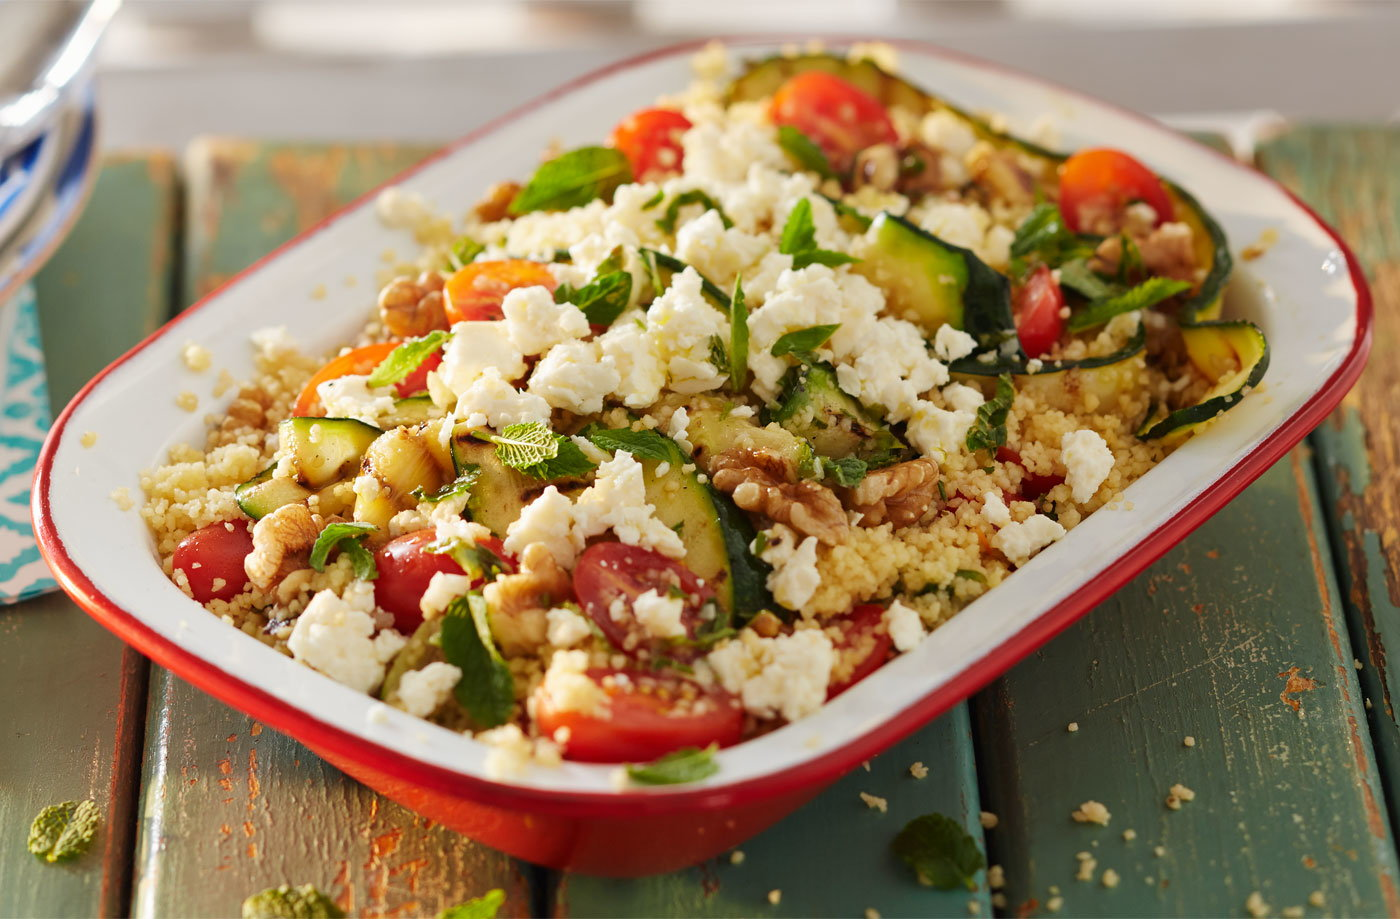 Barbecued courgette and couscous salad with feta recipe